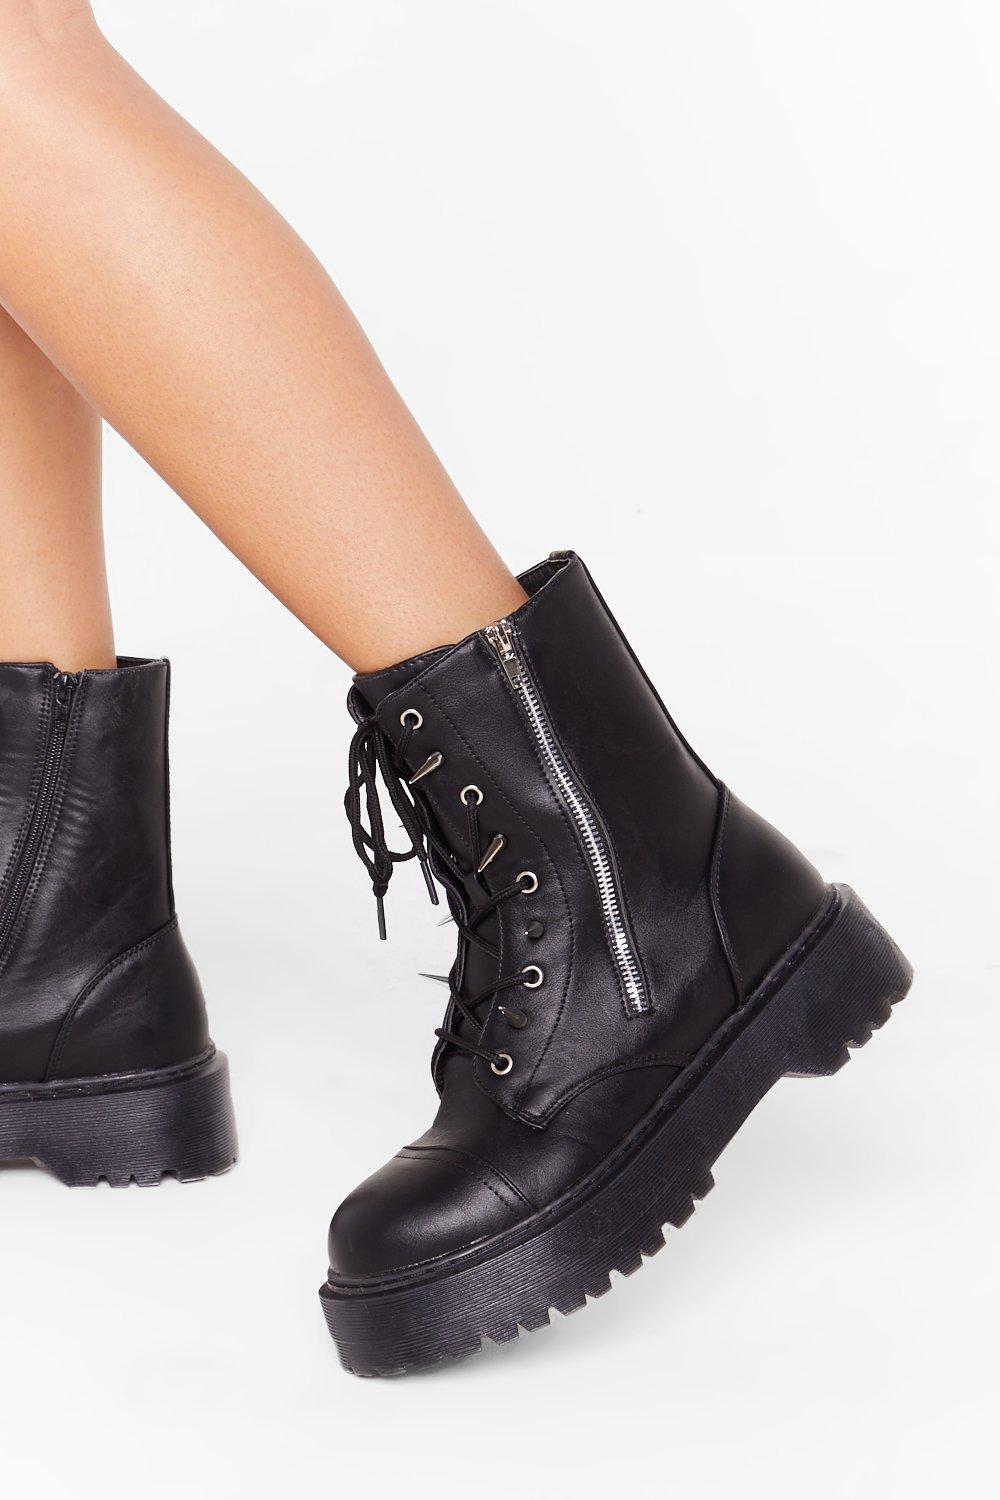 Image of A Moment Spike This Faux Leather Boots